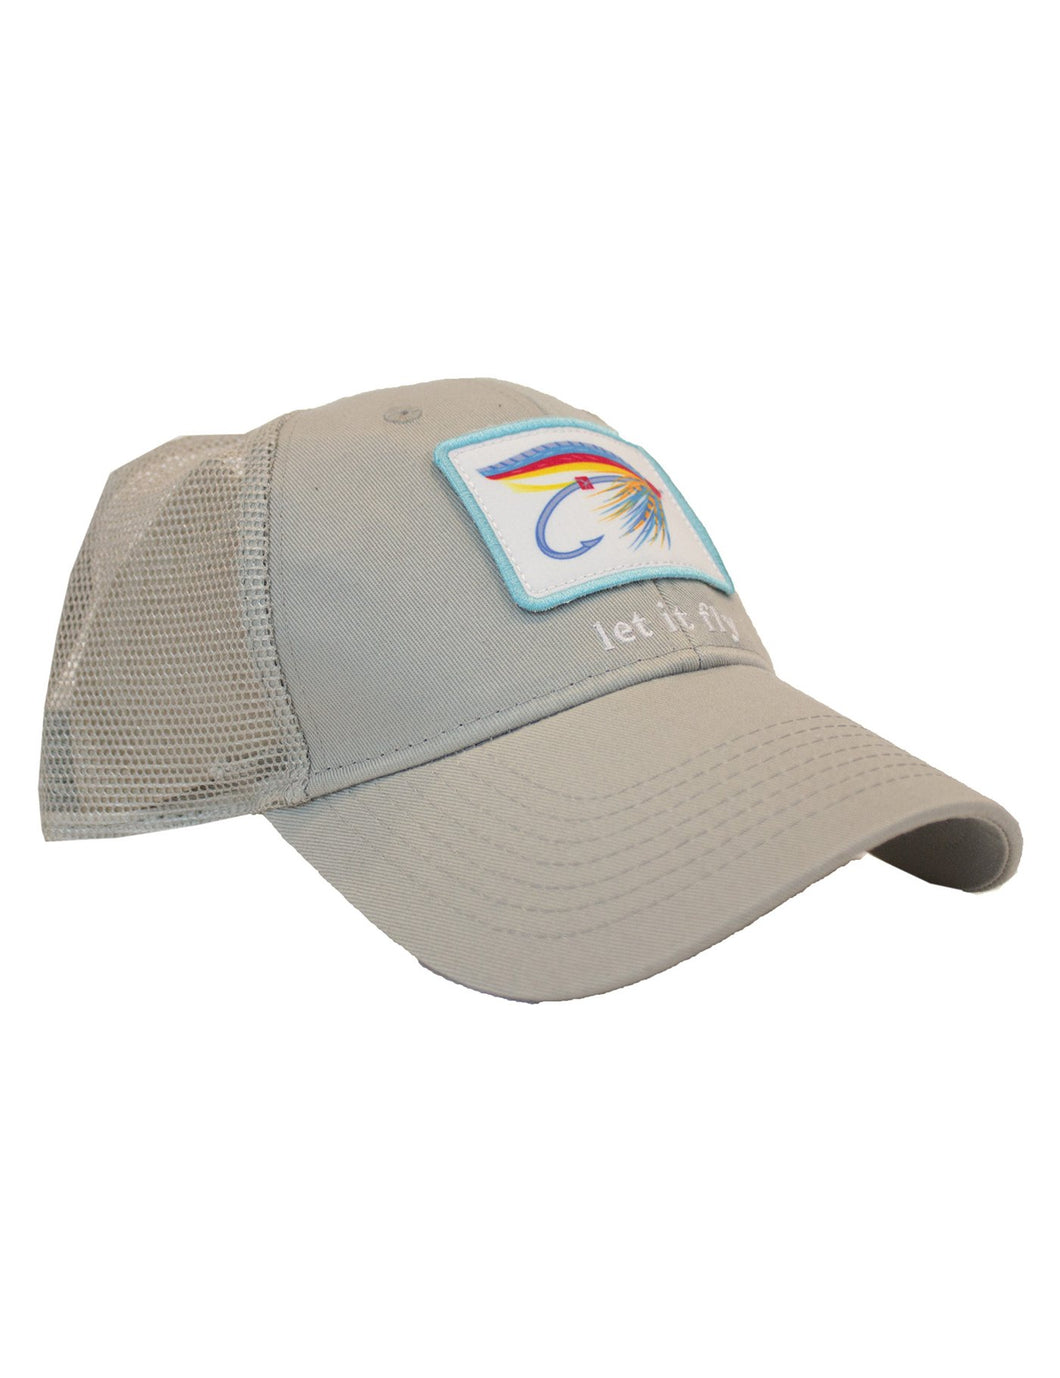 Let it Fly Trucker Hat